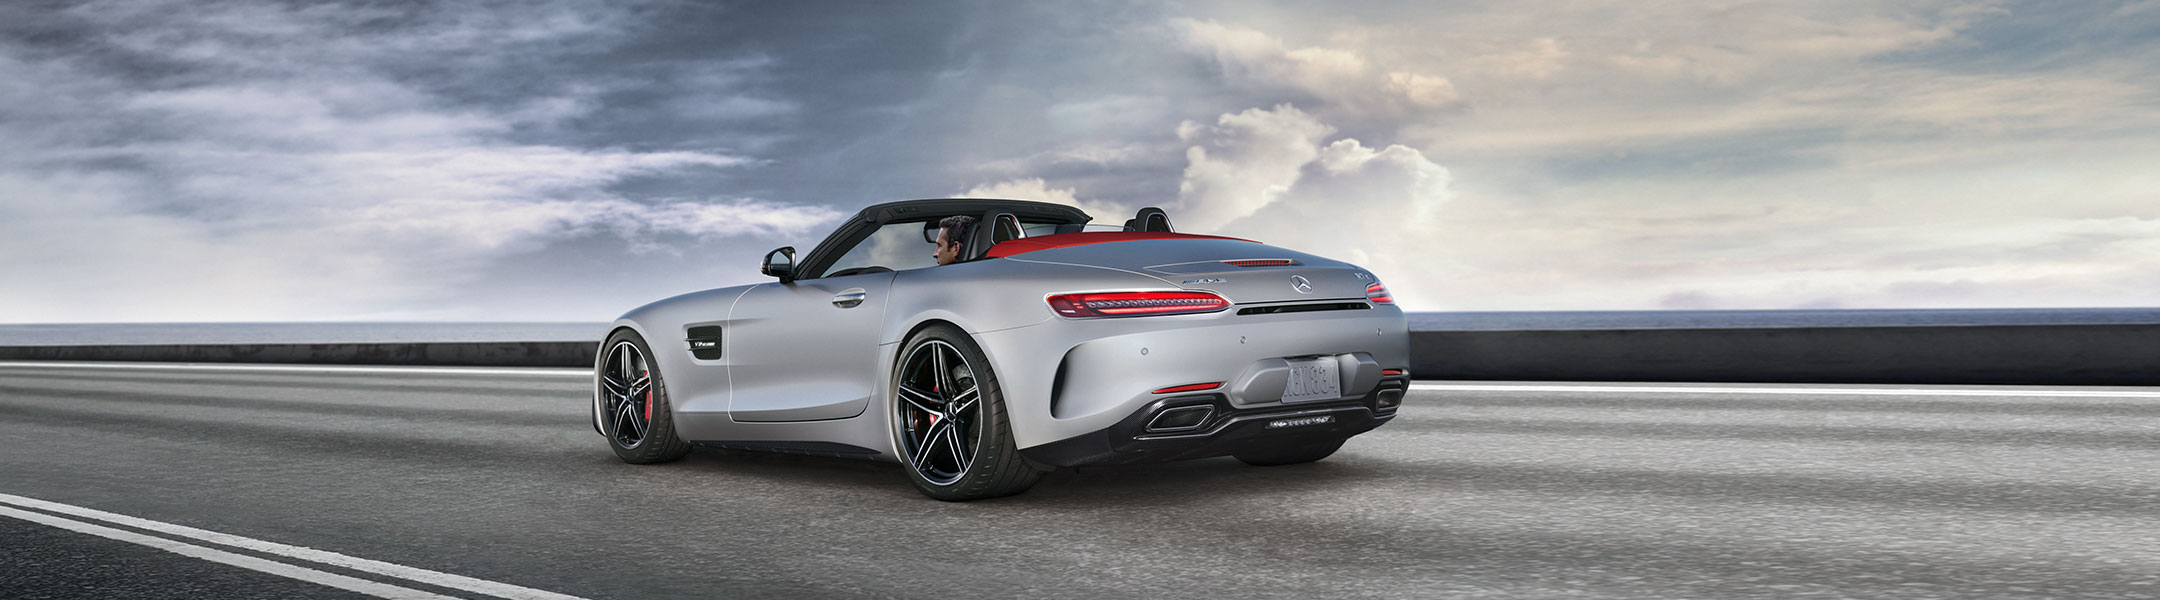 Build your own custom AMG GT Roadster | Mercedes-Benz